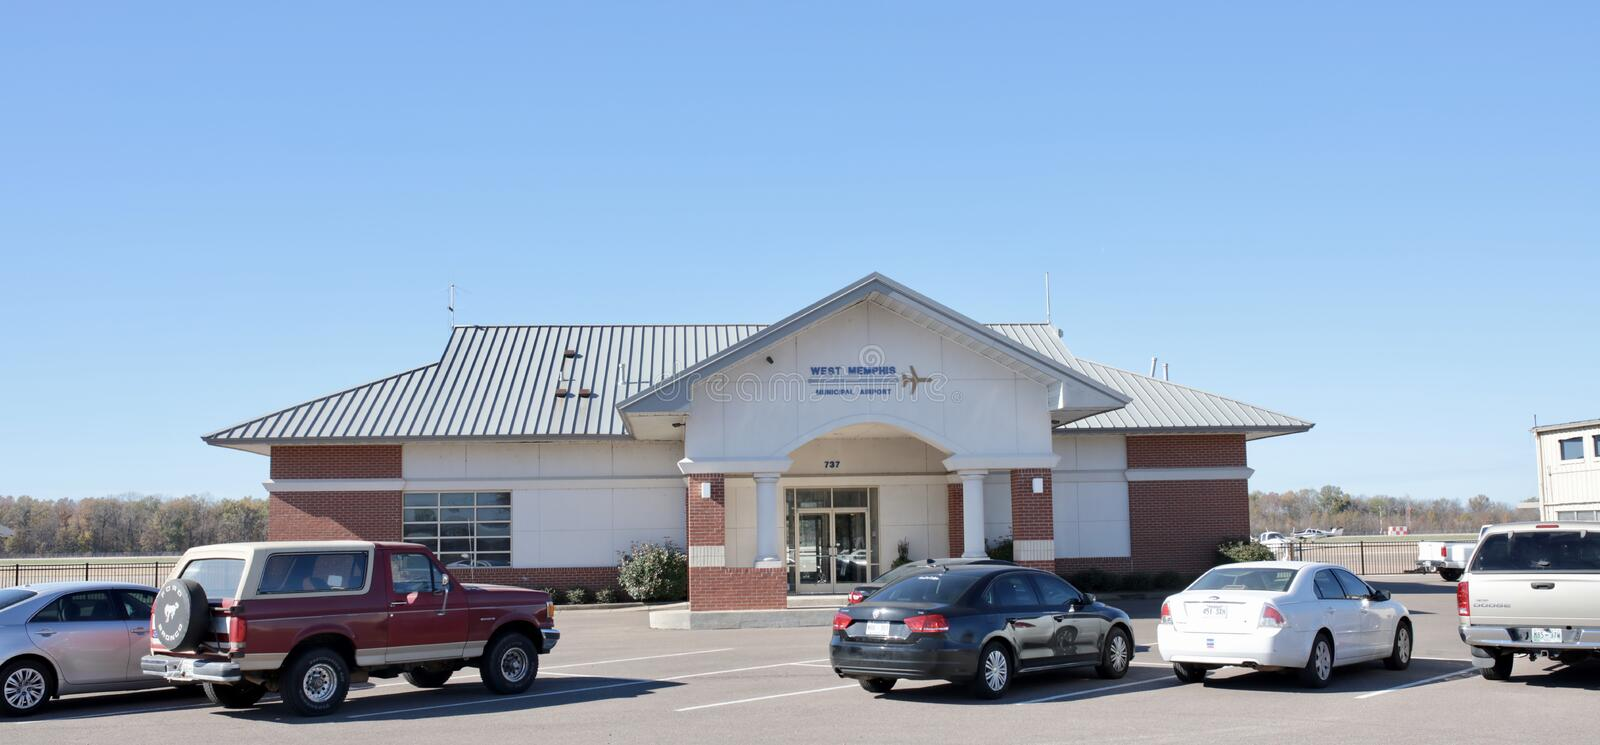 West Memphis Municipal Airport, Helena Arkansas. West Memphis Municipal Airport Center located in West Memphis, Arkansas stock photos